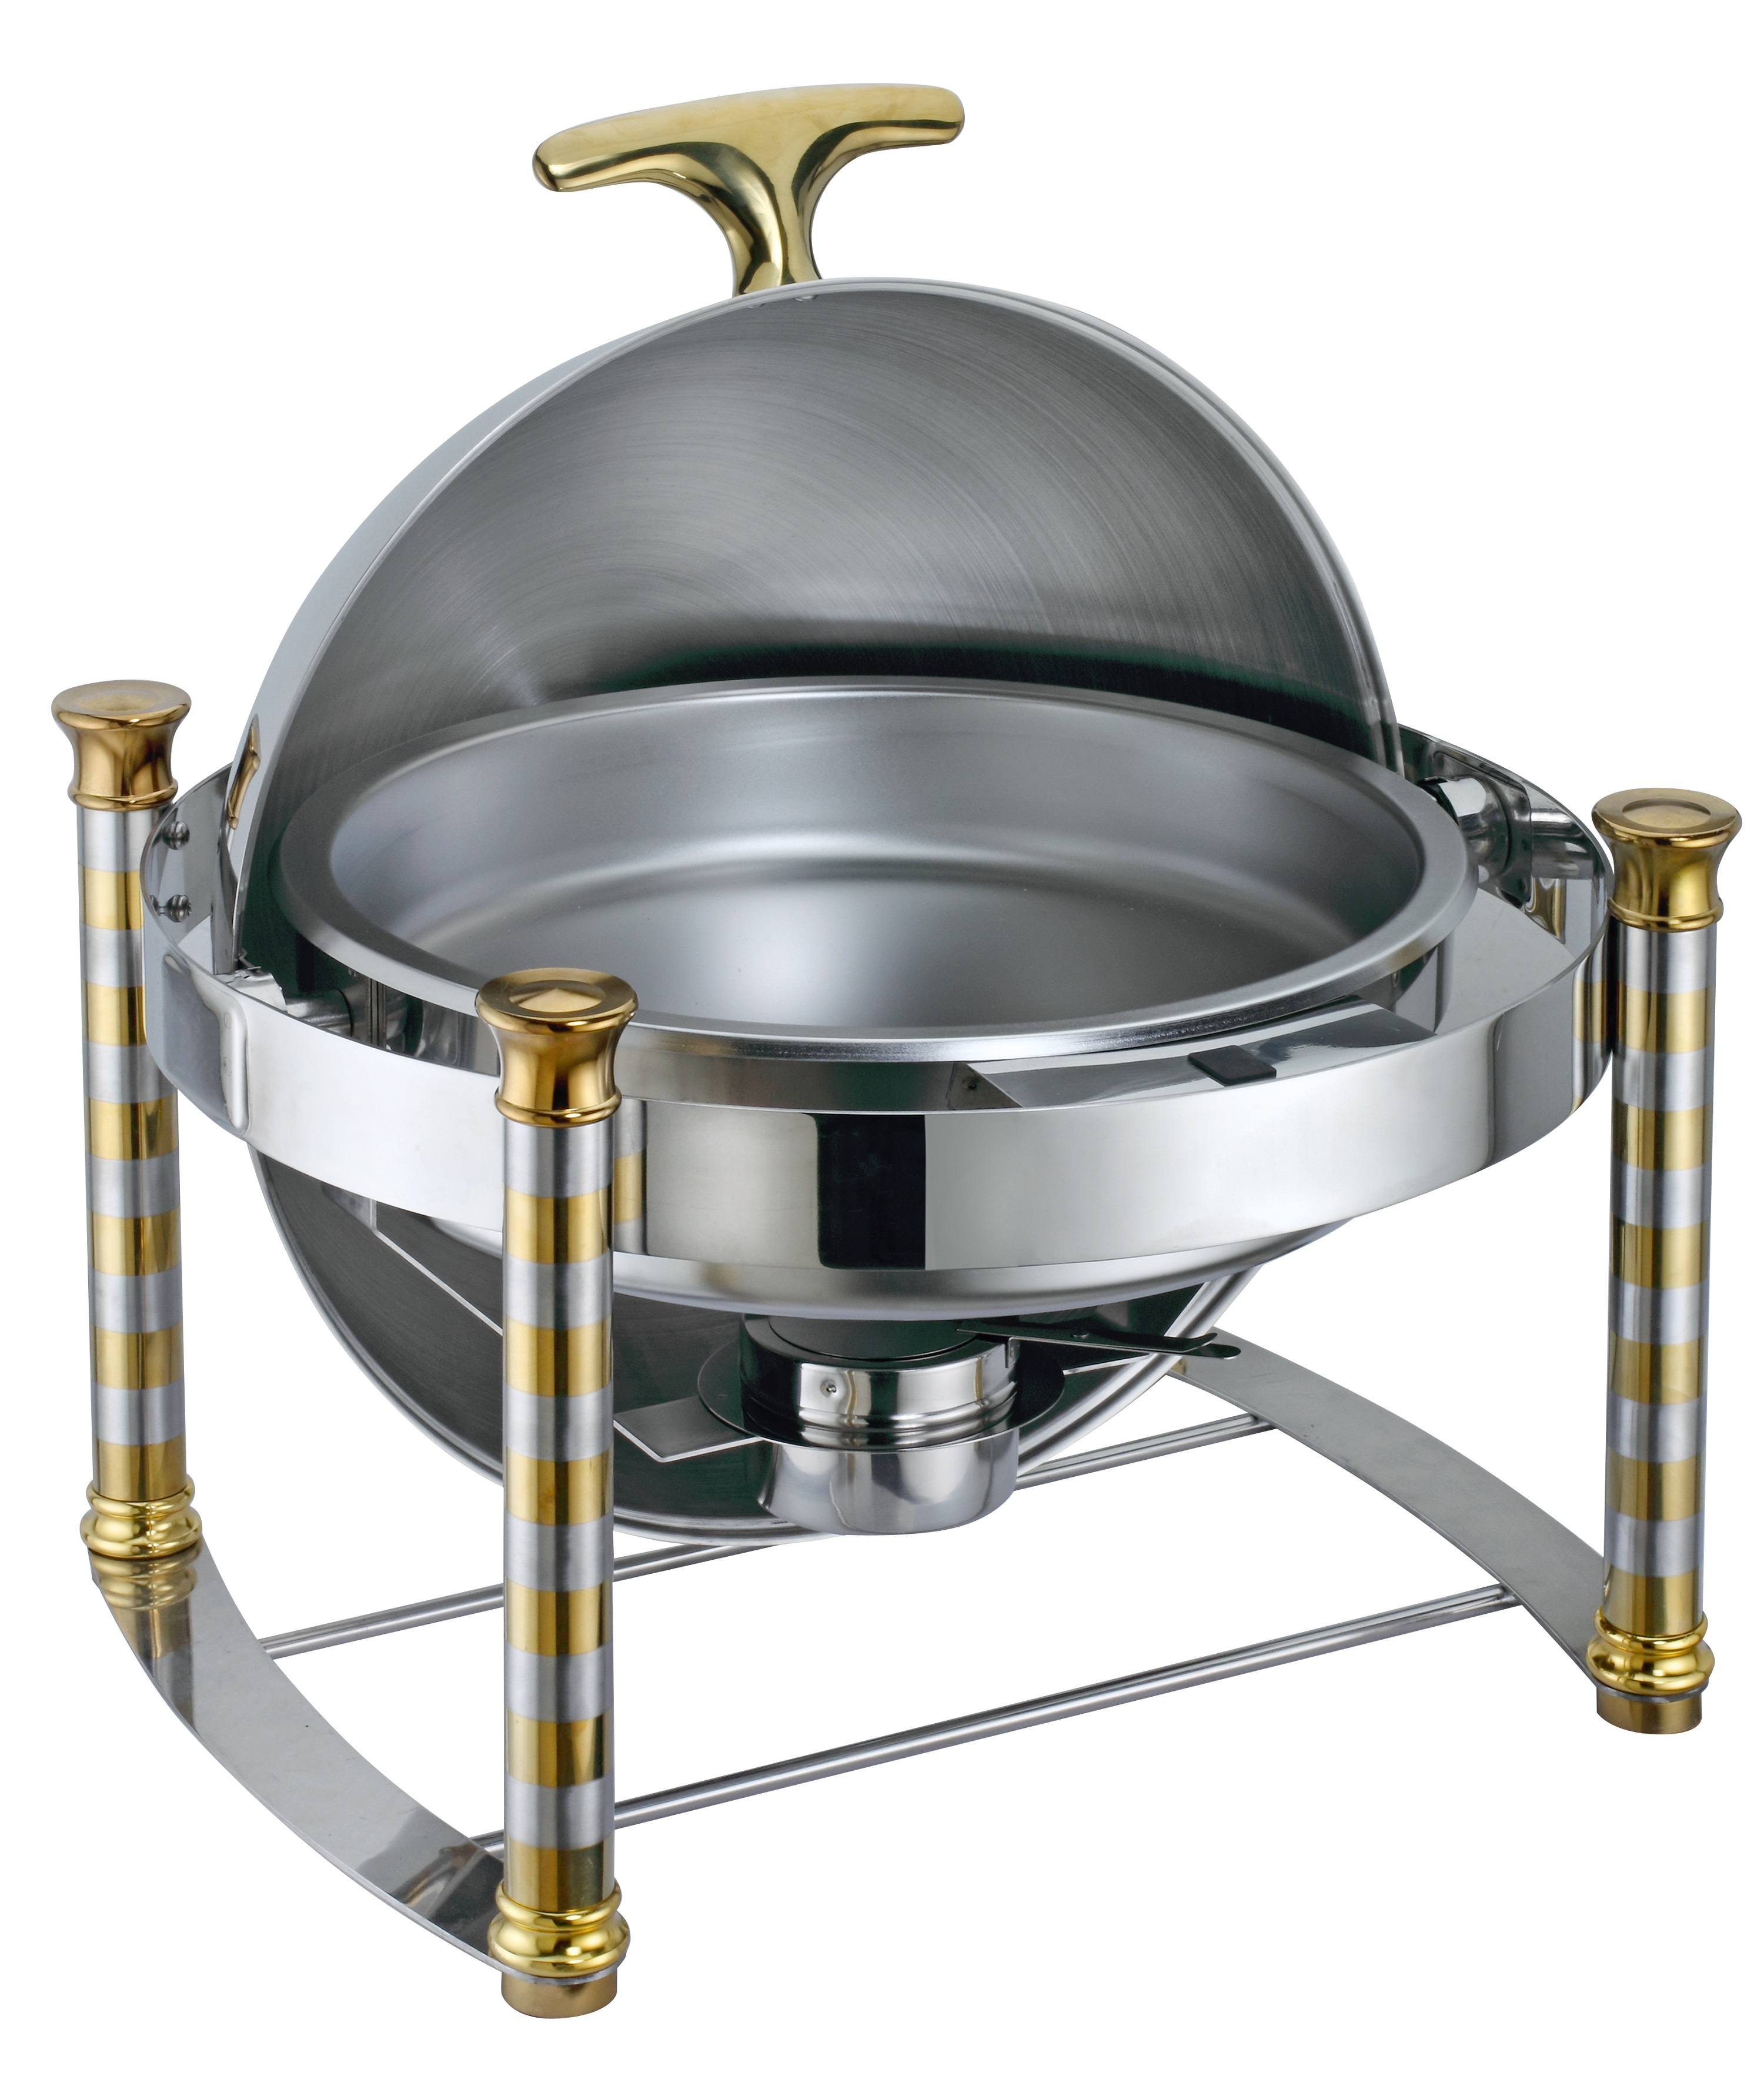 Factory price food warmer stainless steel chafing dish for catering